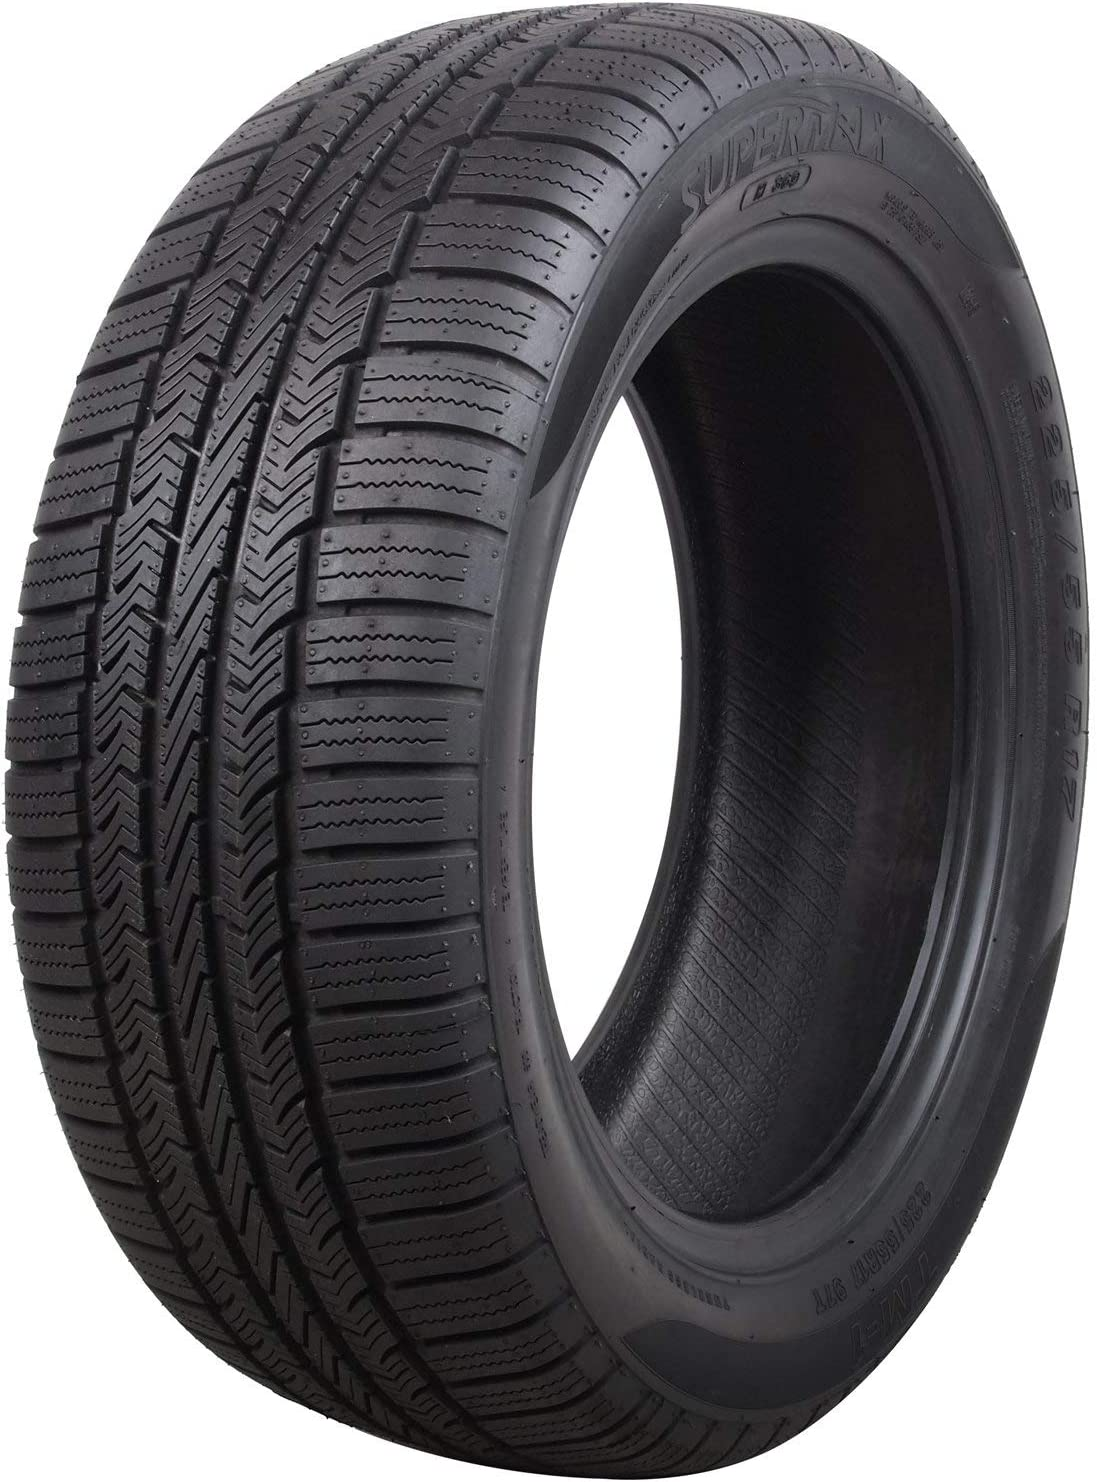 Season Radial Tire-225//50R17 94V SUPERMAX TM-1 All